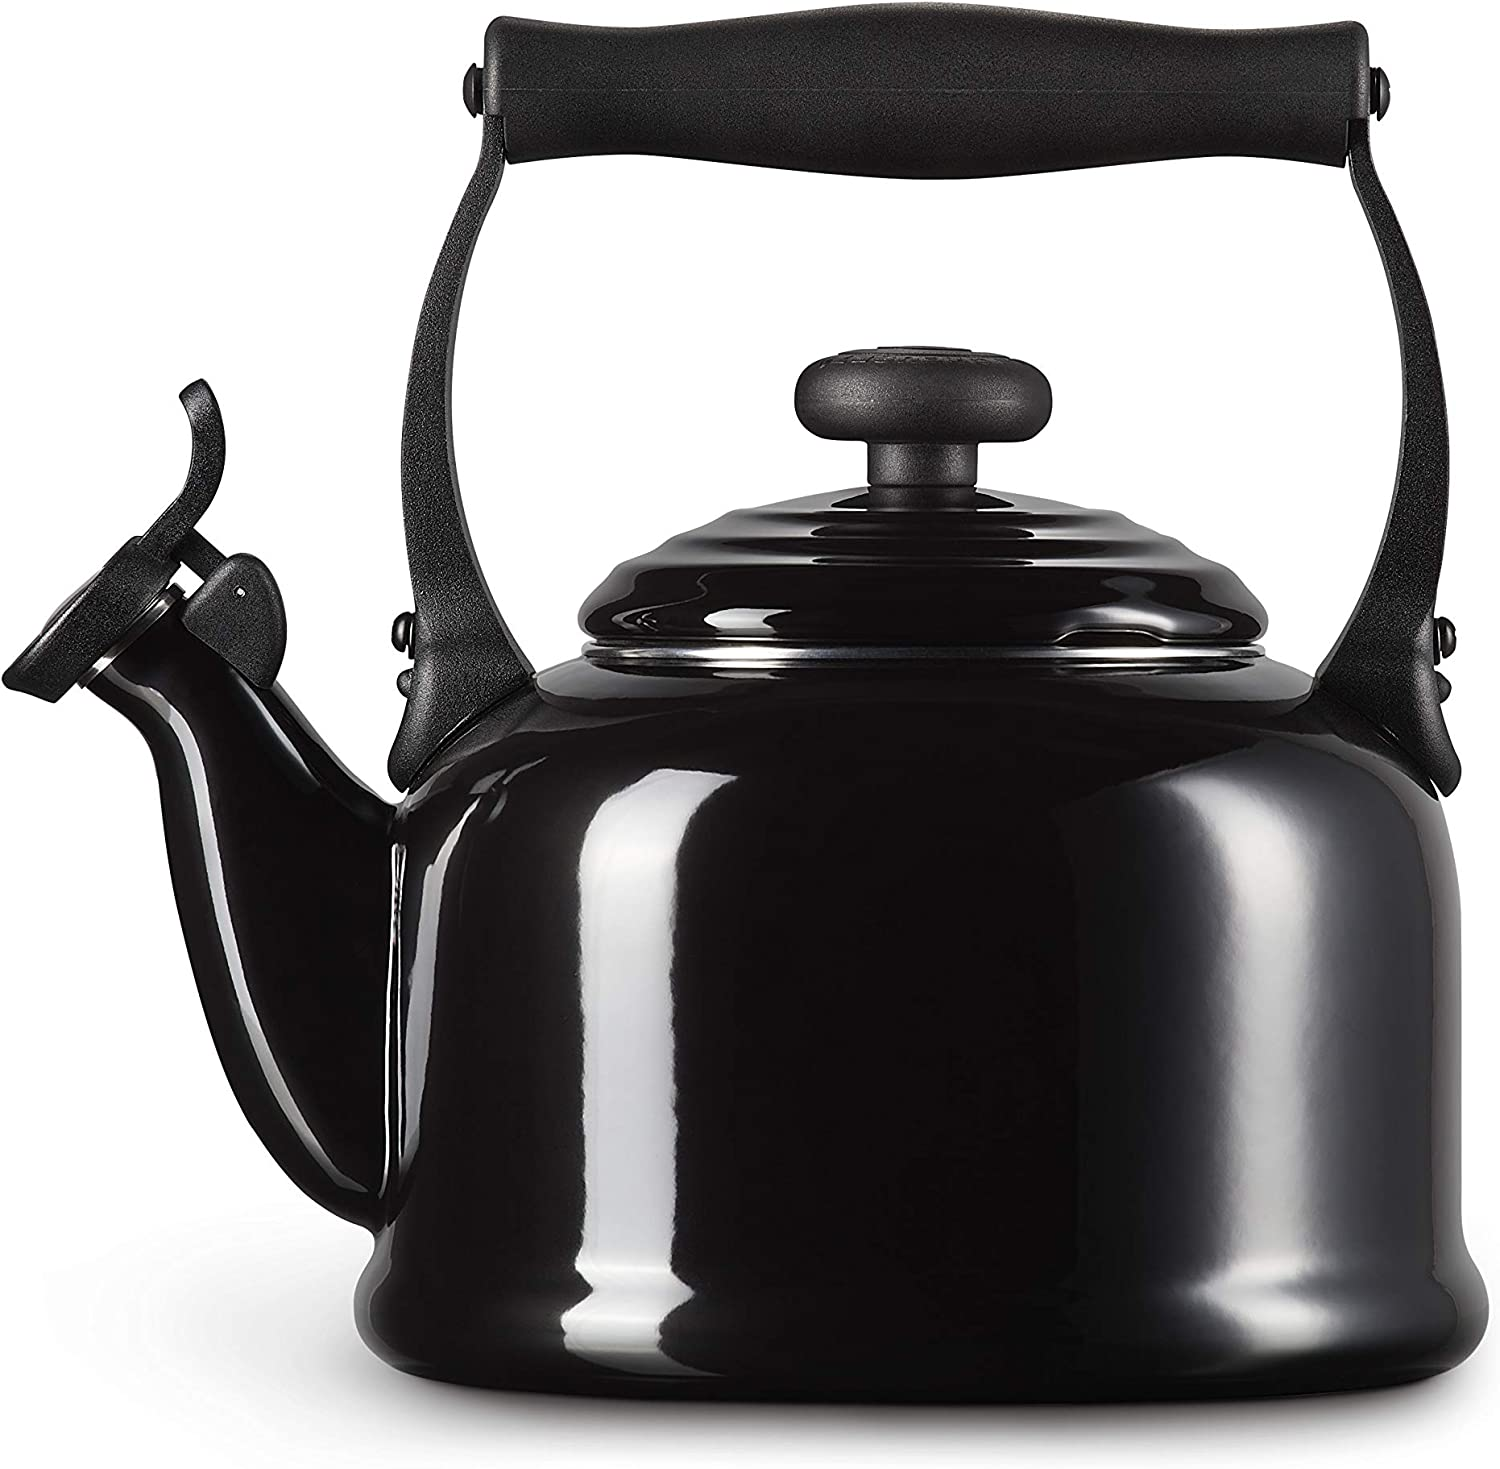 Le Creuset Tradational kettle with